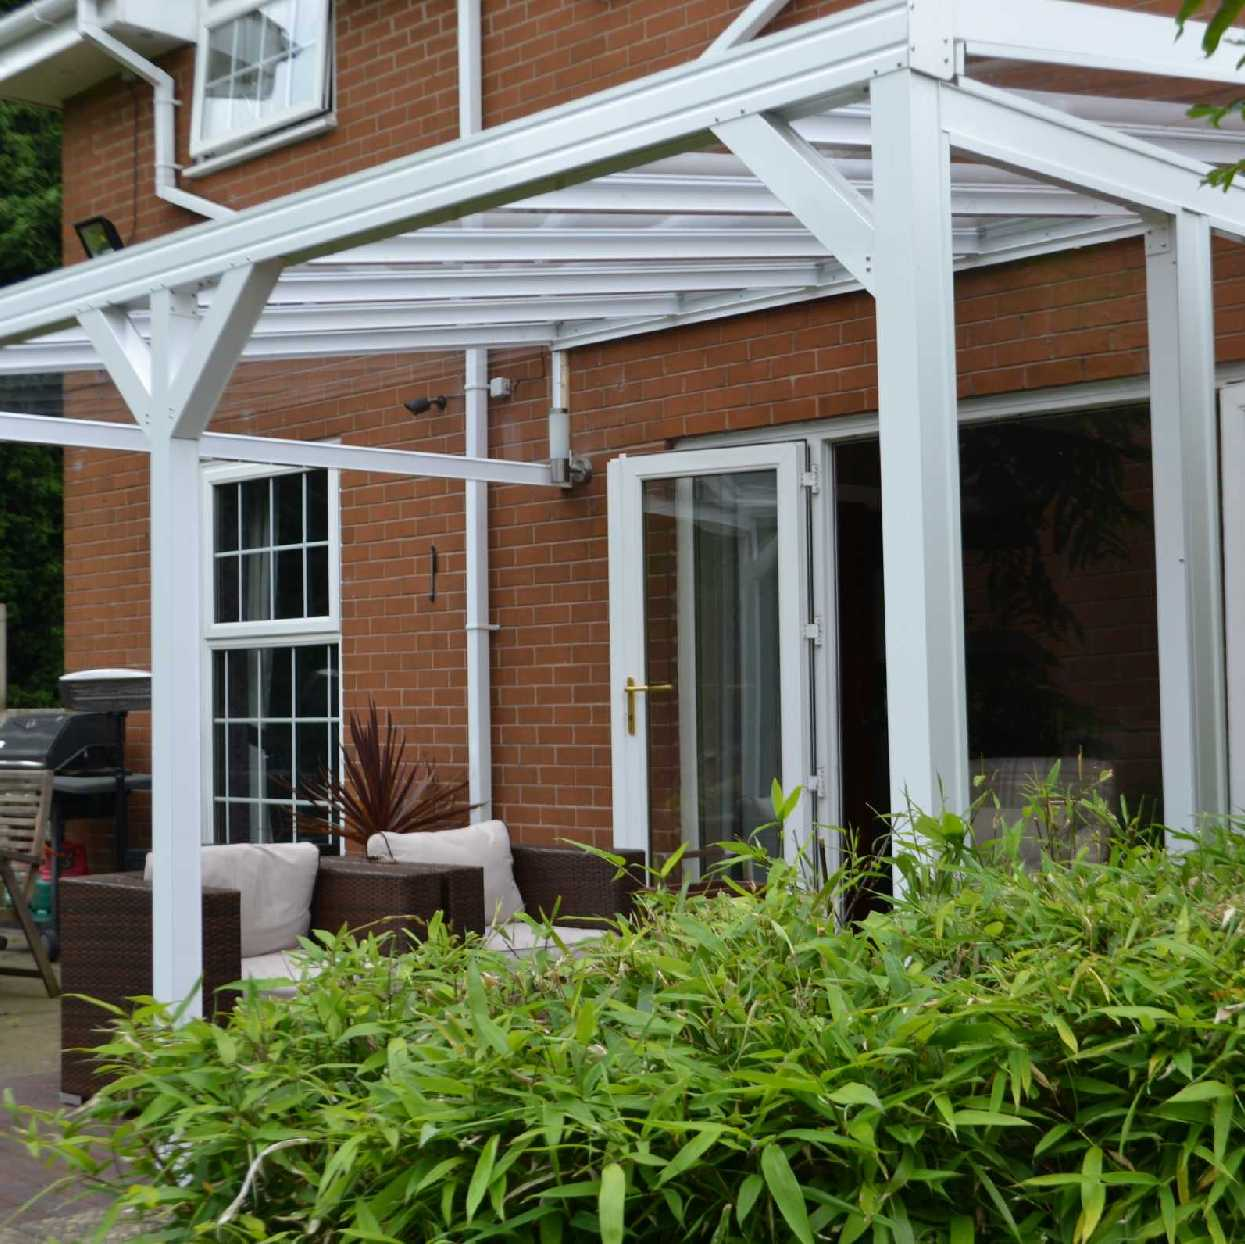 Omega Smart Lean-To Canopy with 6mm Glass Clear Plate Polycarbonate Glazing - 5.6m (W) x 2.0m (P), (3) Supporting Posts from Omega Build